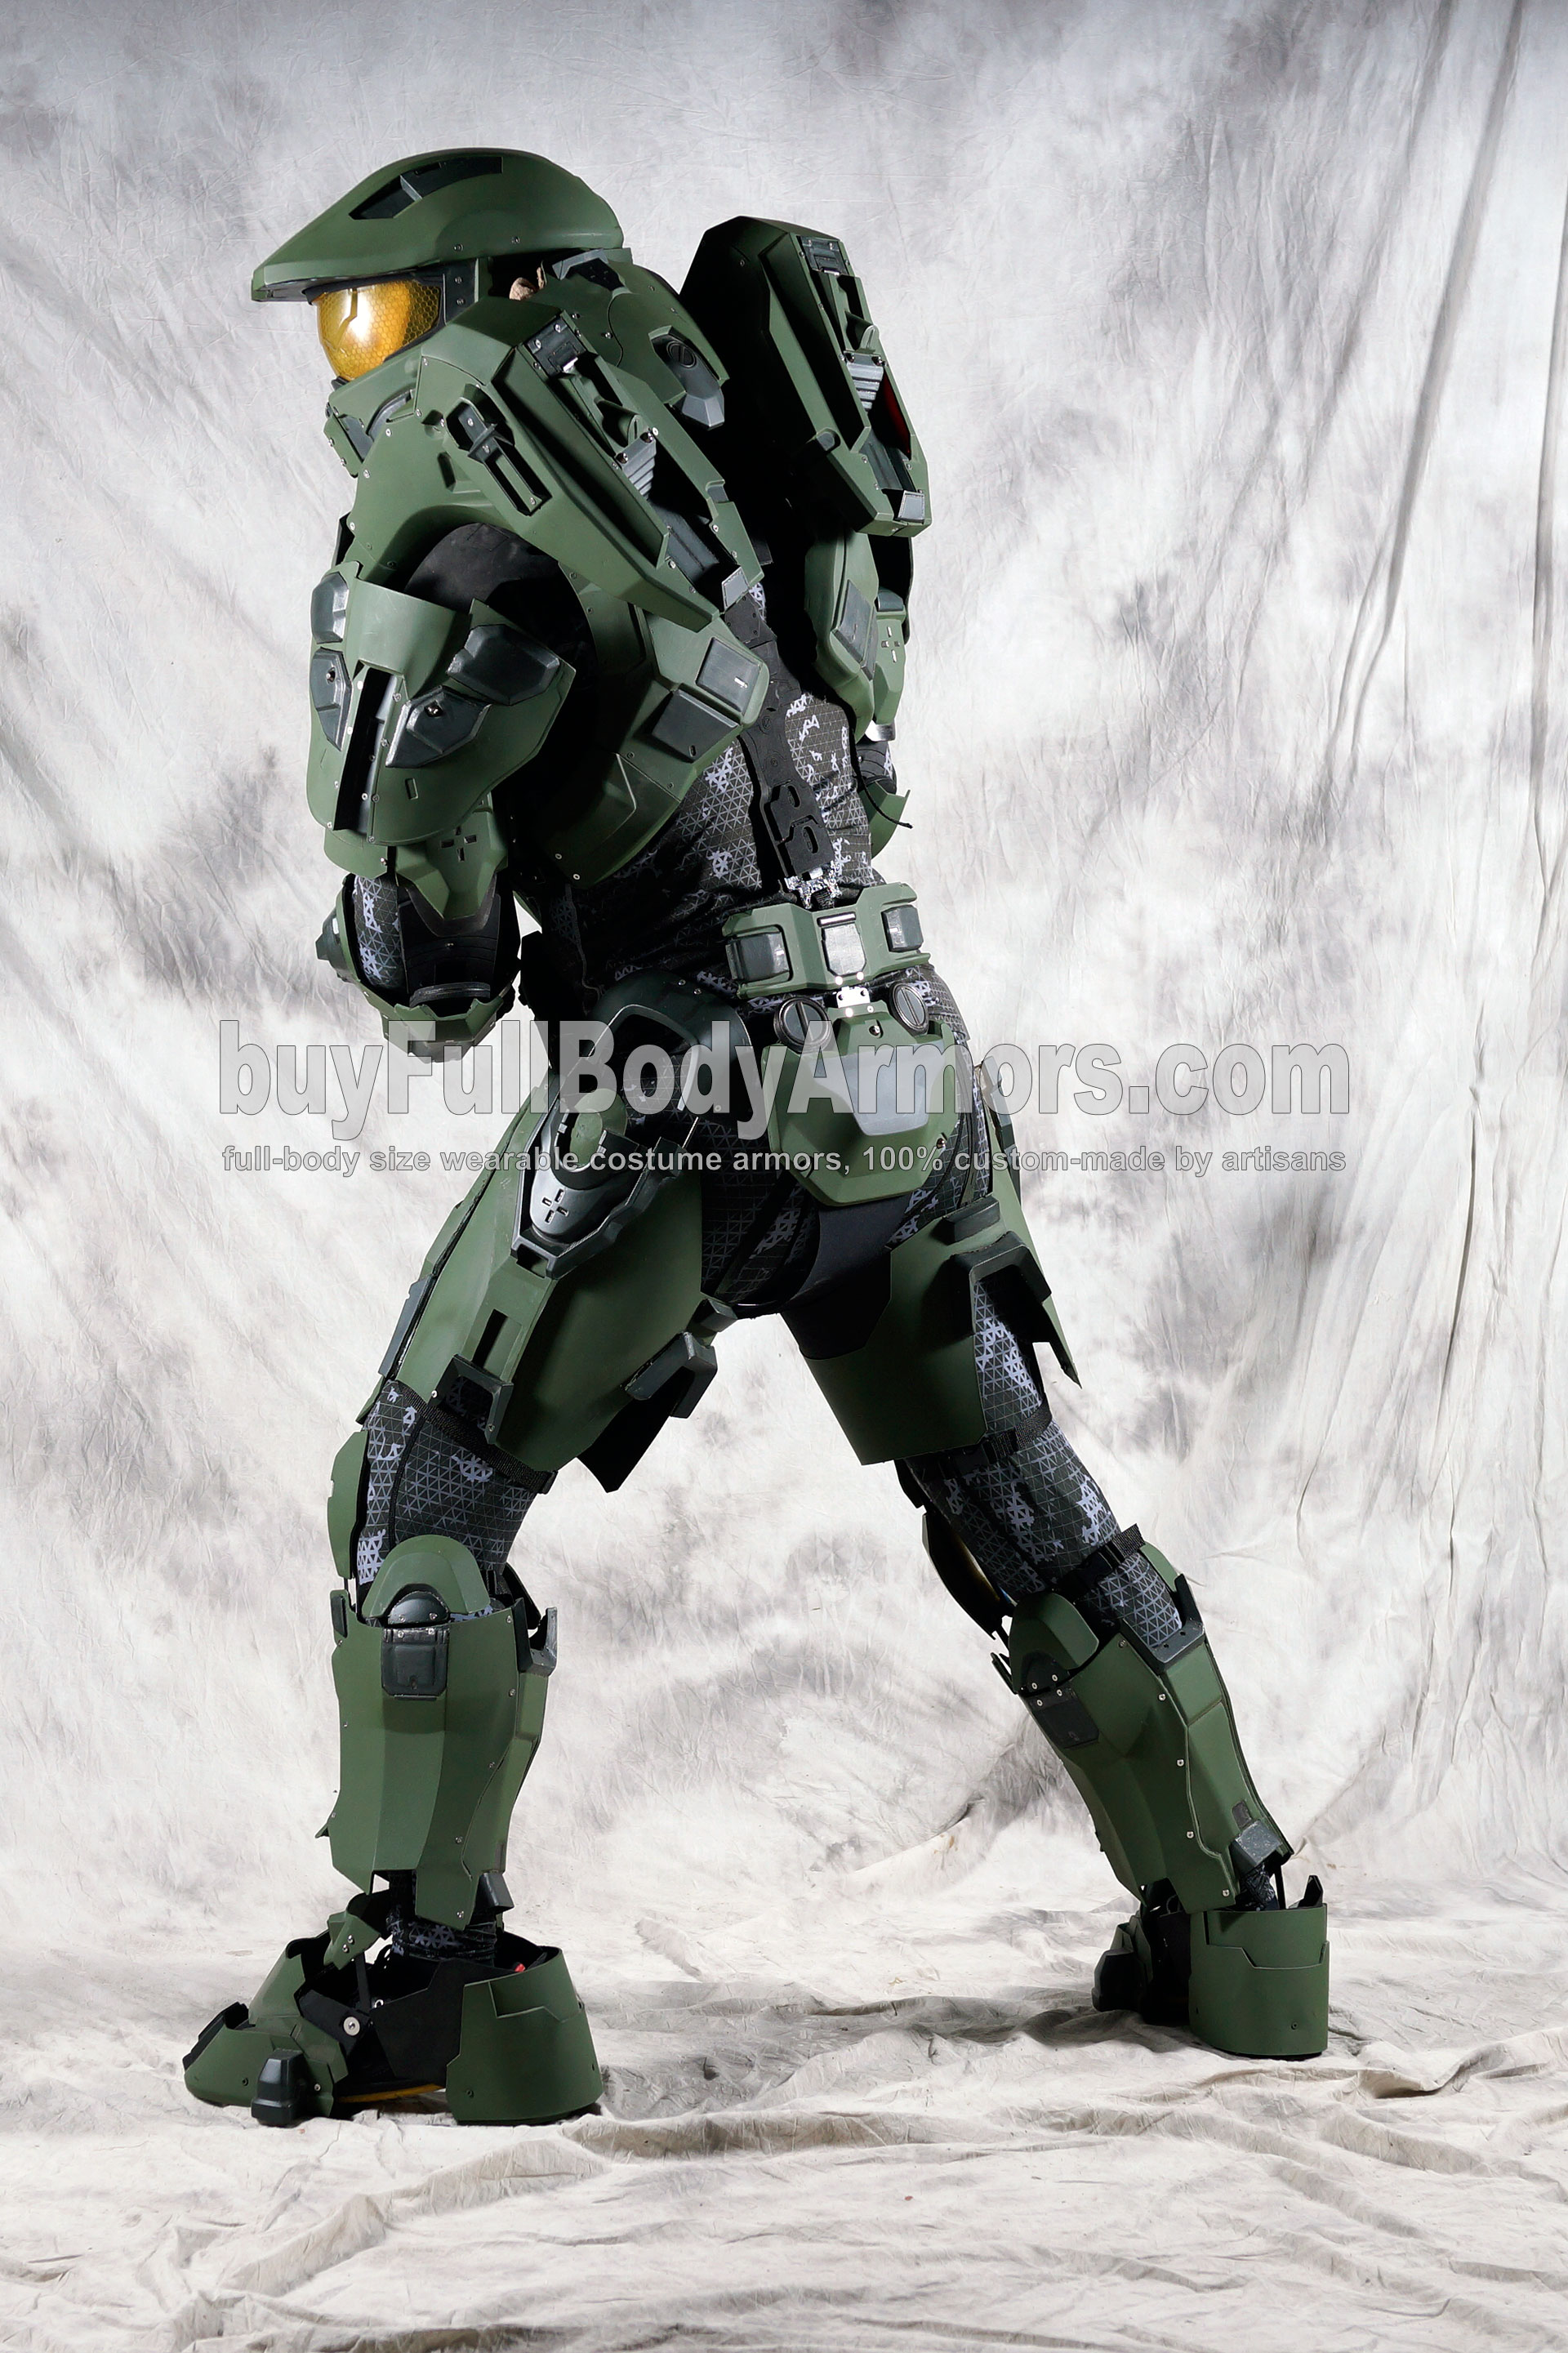 Halo 5 Master Chief Armor Suit Costume 4 : halo 4 costume  - Germanpascual.Com